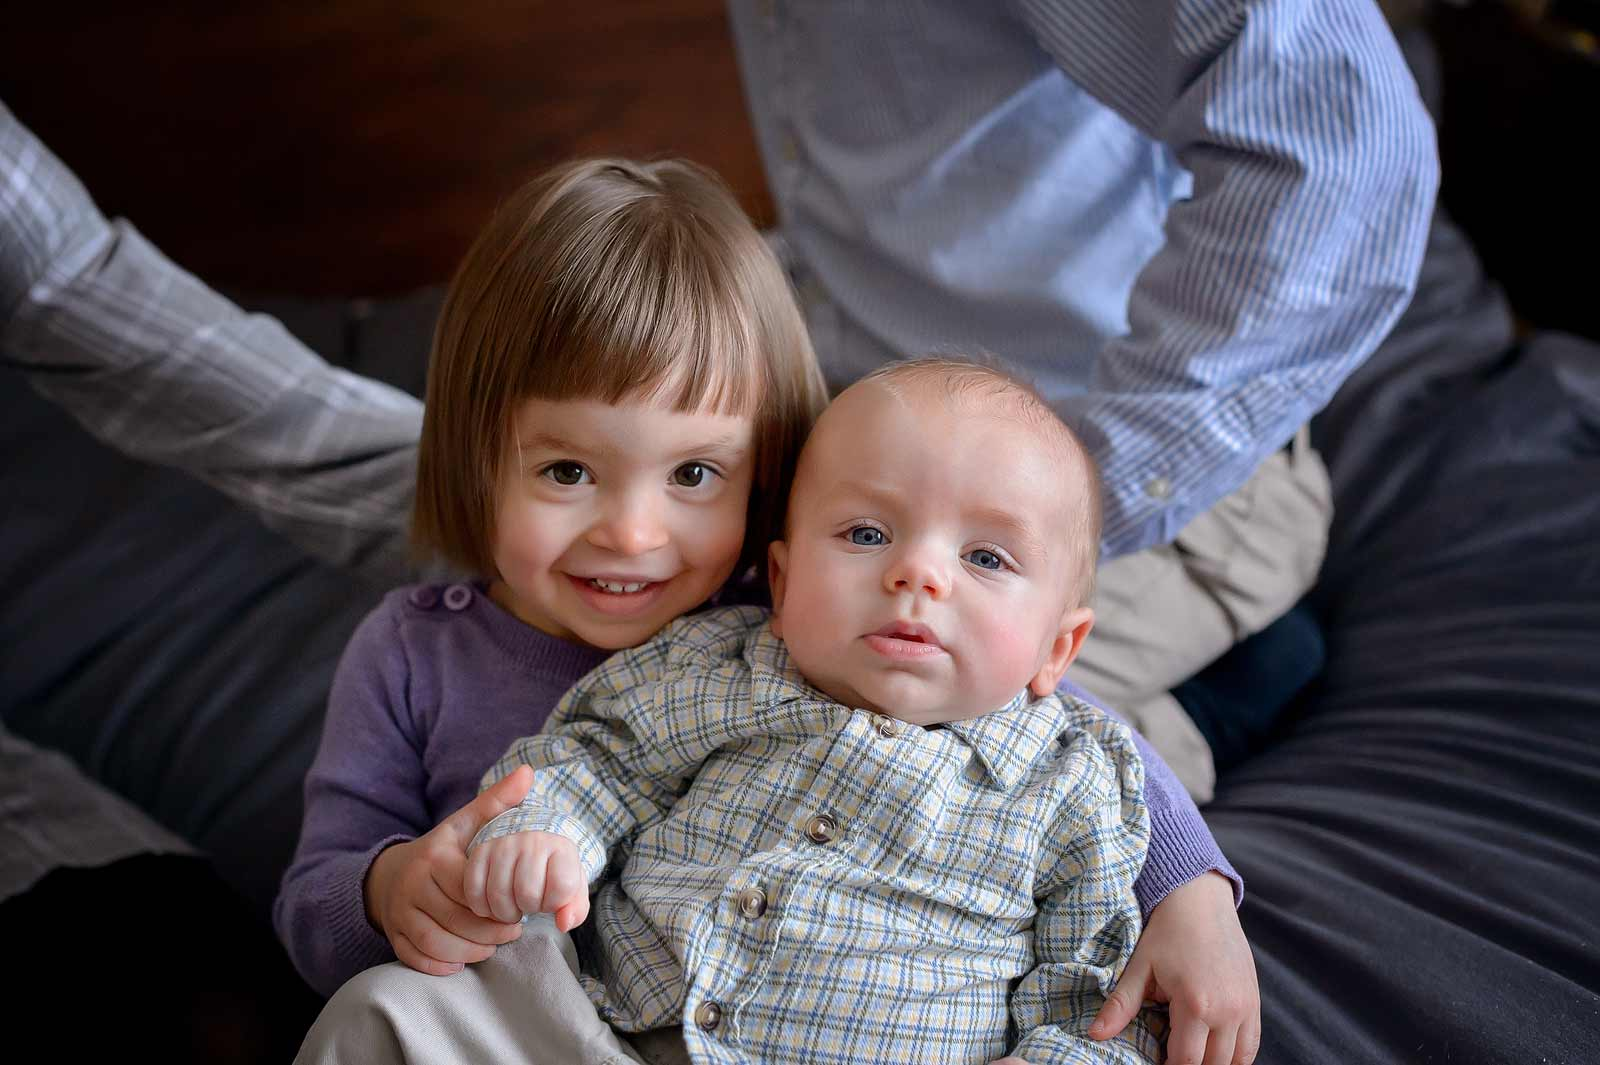 Sweet photo of two siblings together